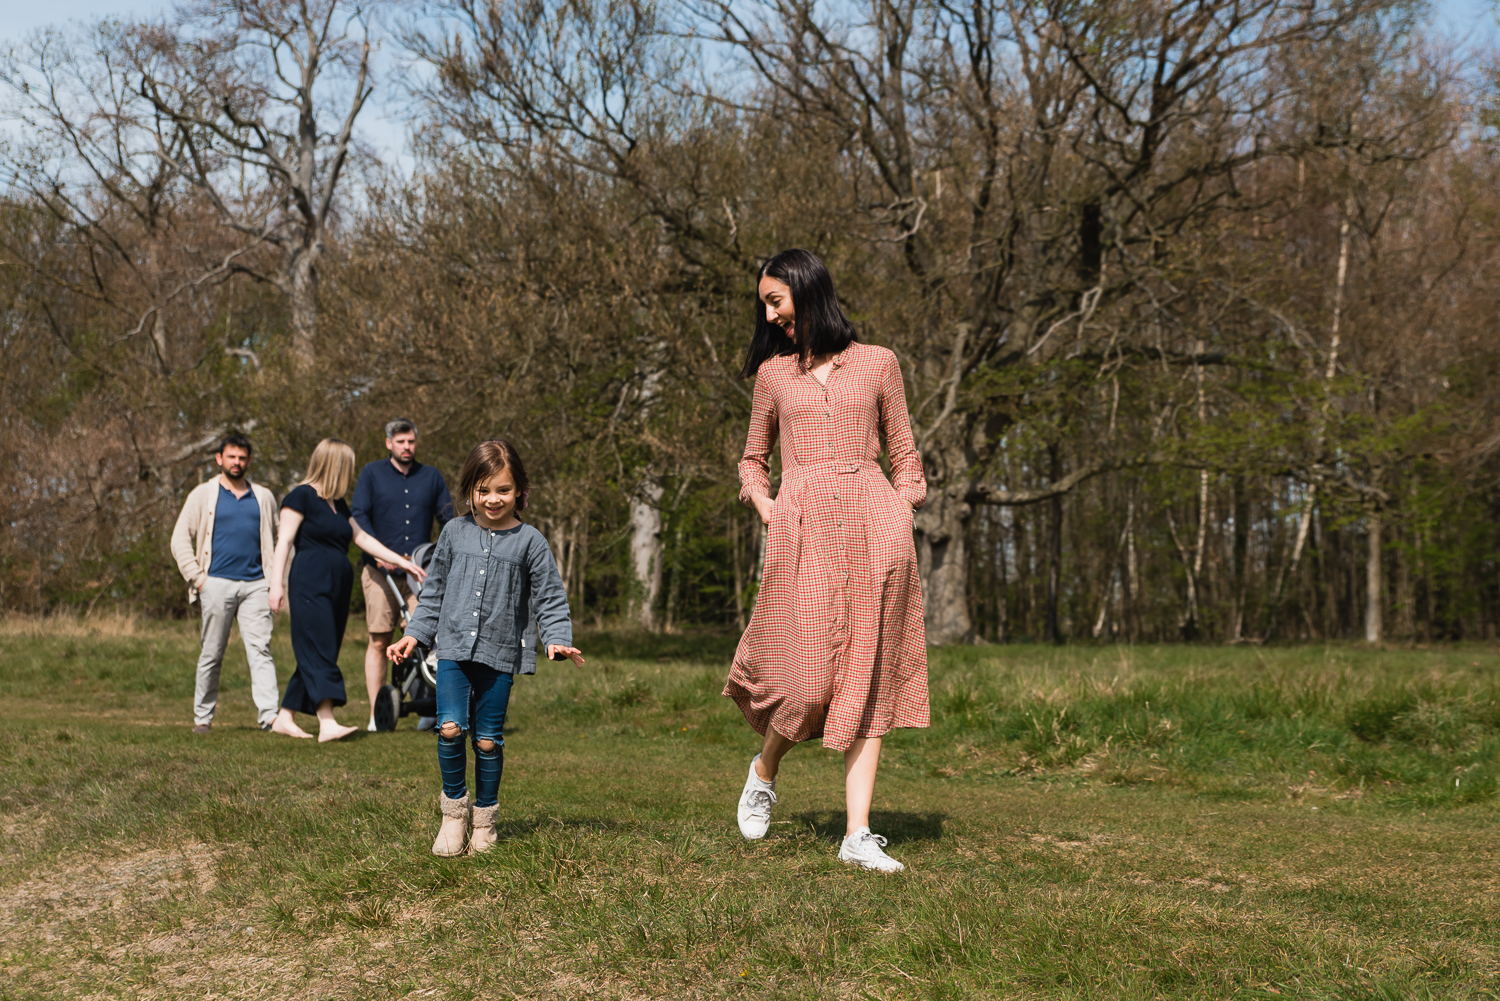 Mum and daughter taking a stroll together during a family photoshoot in Wandlebury Country Park